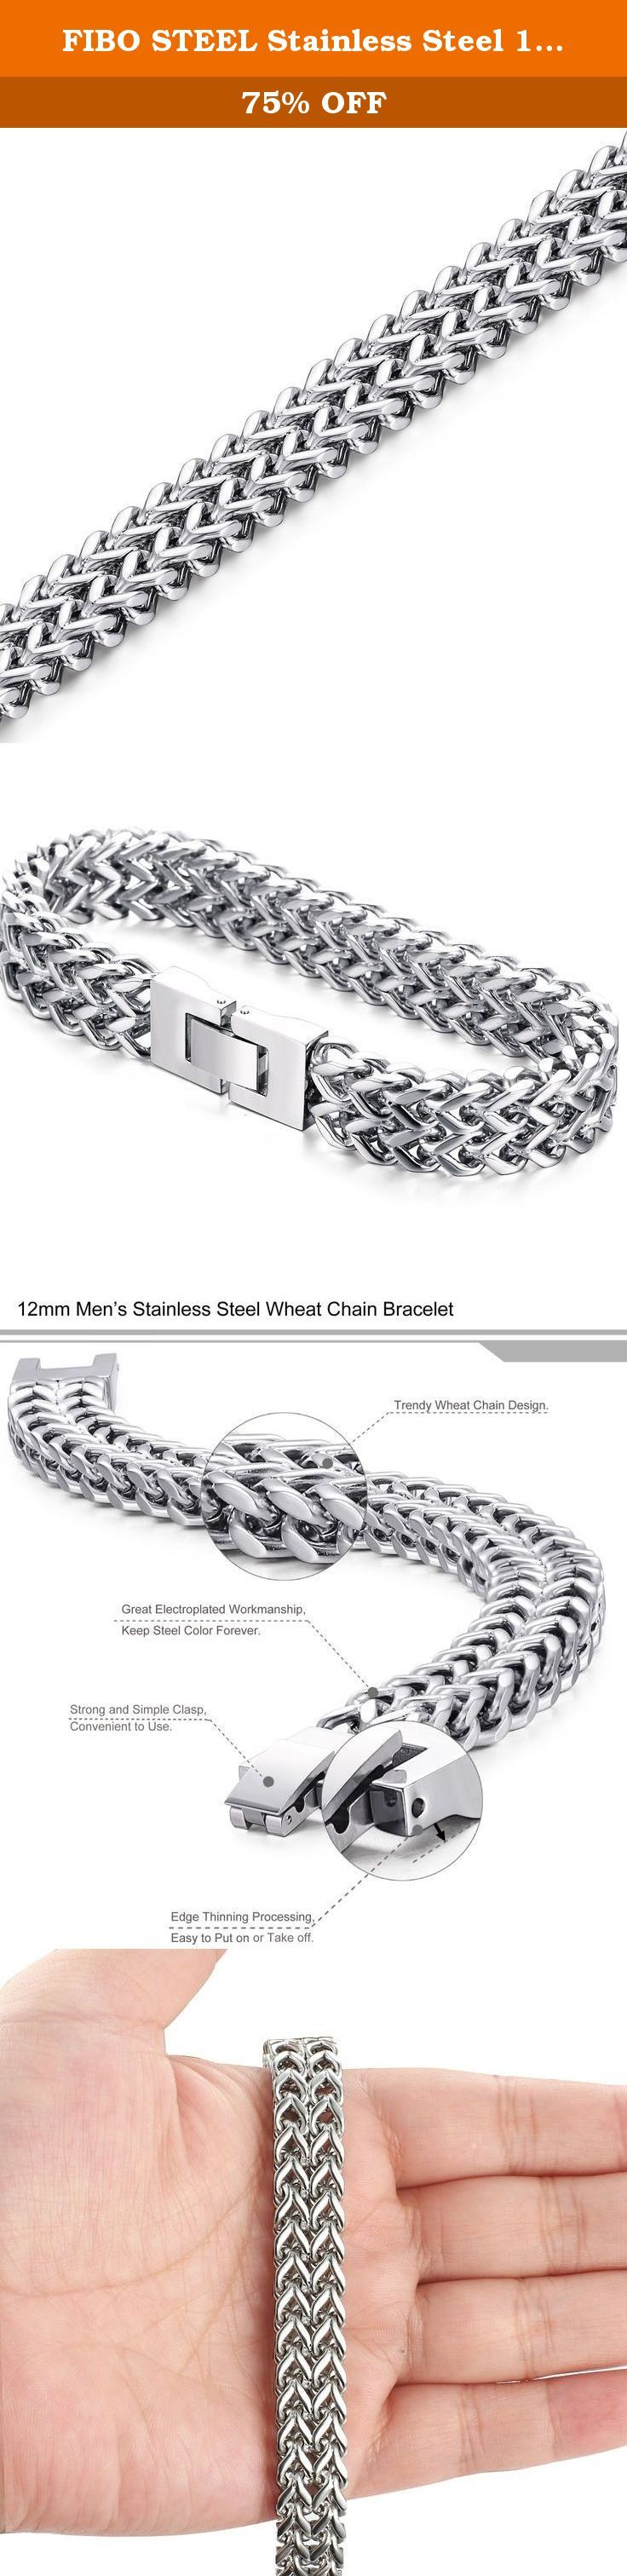 FIBO STEEL Stainless Steel 12MM Two-strand Wheat Chain Bracelet for Men Punk Biker Bracelet,8.0 inches. FIBO STEEL - I never wanted to be your whole life. Just your favorite part. FIBO STEEL main engage in selling all kinds of high quality stainless steel jewelry at affordable price. Best shopping experience is our main goal that we try our best to arrive all the time. FIBO STEEL - Do what we say, say what we do In order to let you have a happy shopping experience,we have done and will do…